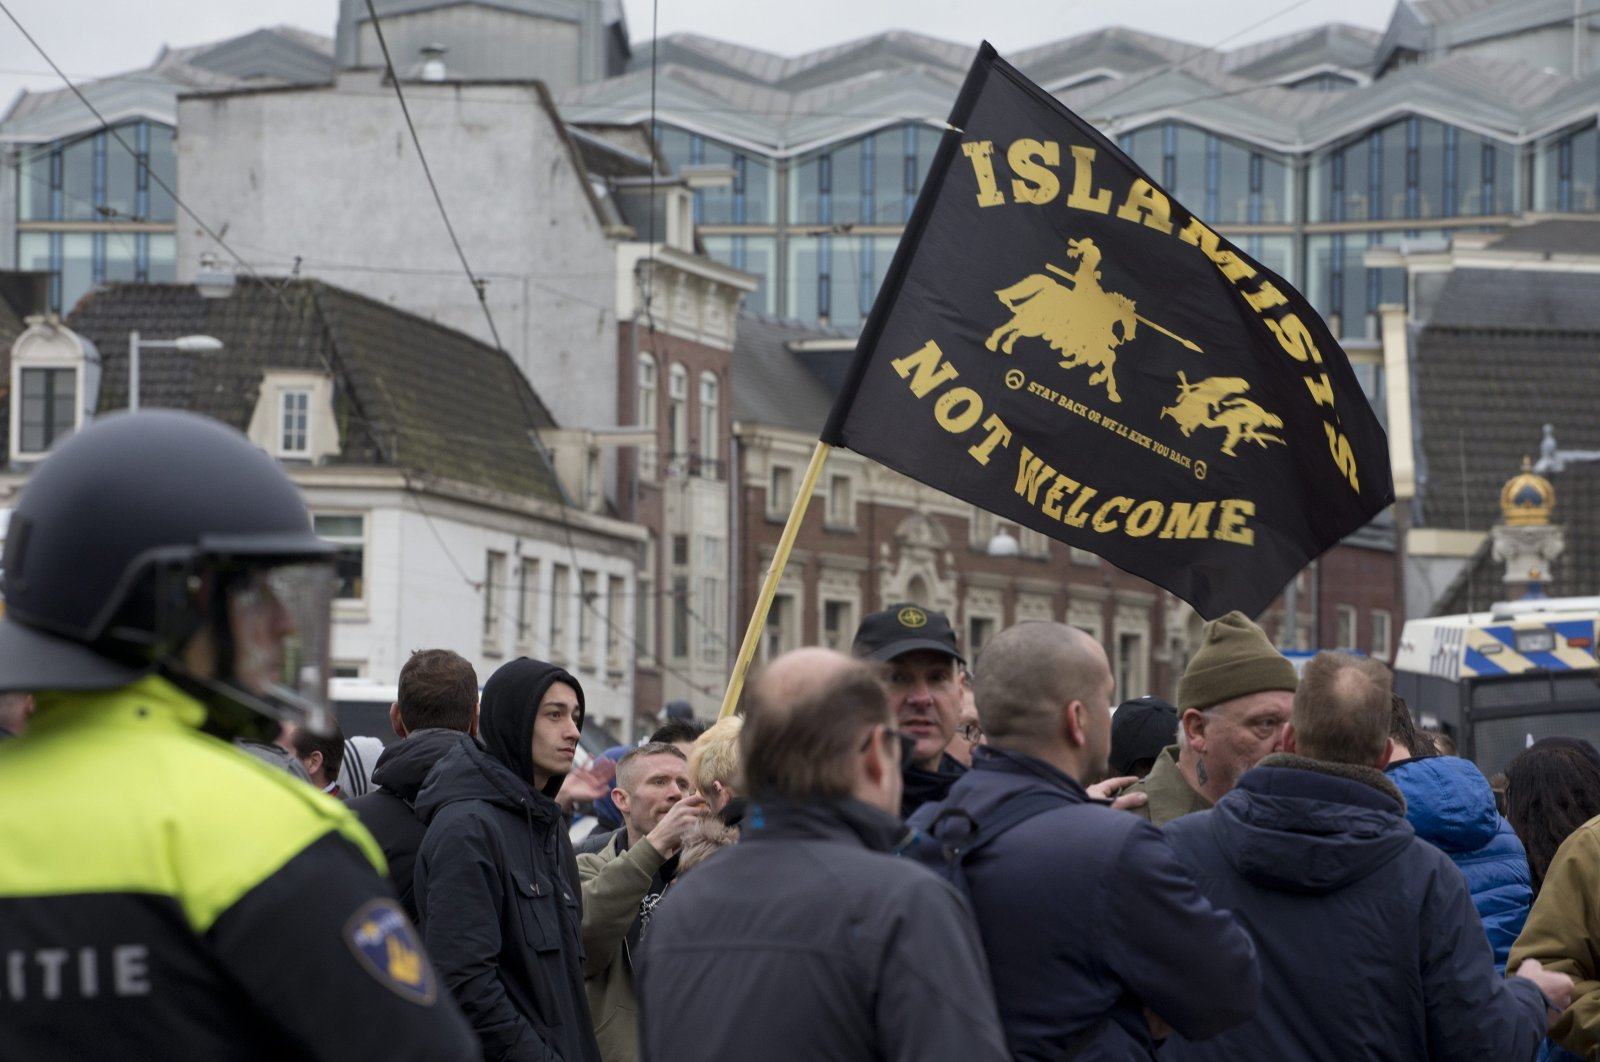 """Riot police separate pro- and anti- immigration demonstrators as a man waves a flag reading """"Islamists Not Welcome"""" during a far-right Pegida demonstration in Amsterdam, Netherlands, Feb. 6, 2016. (AP Photo)"""